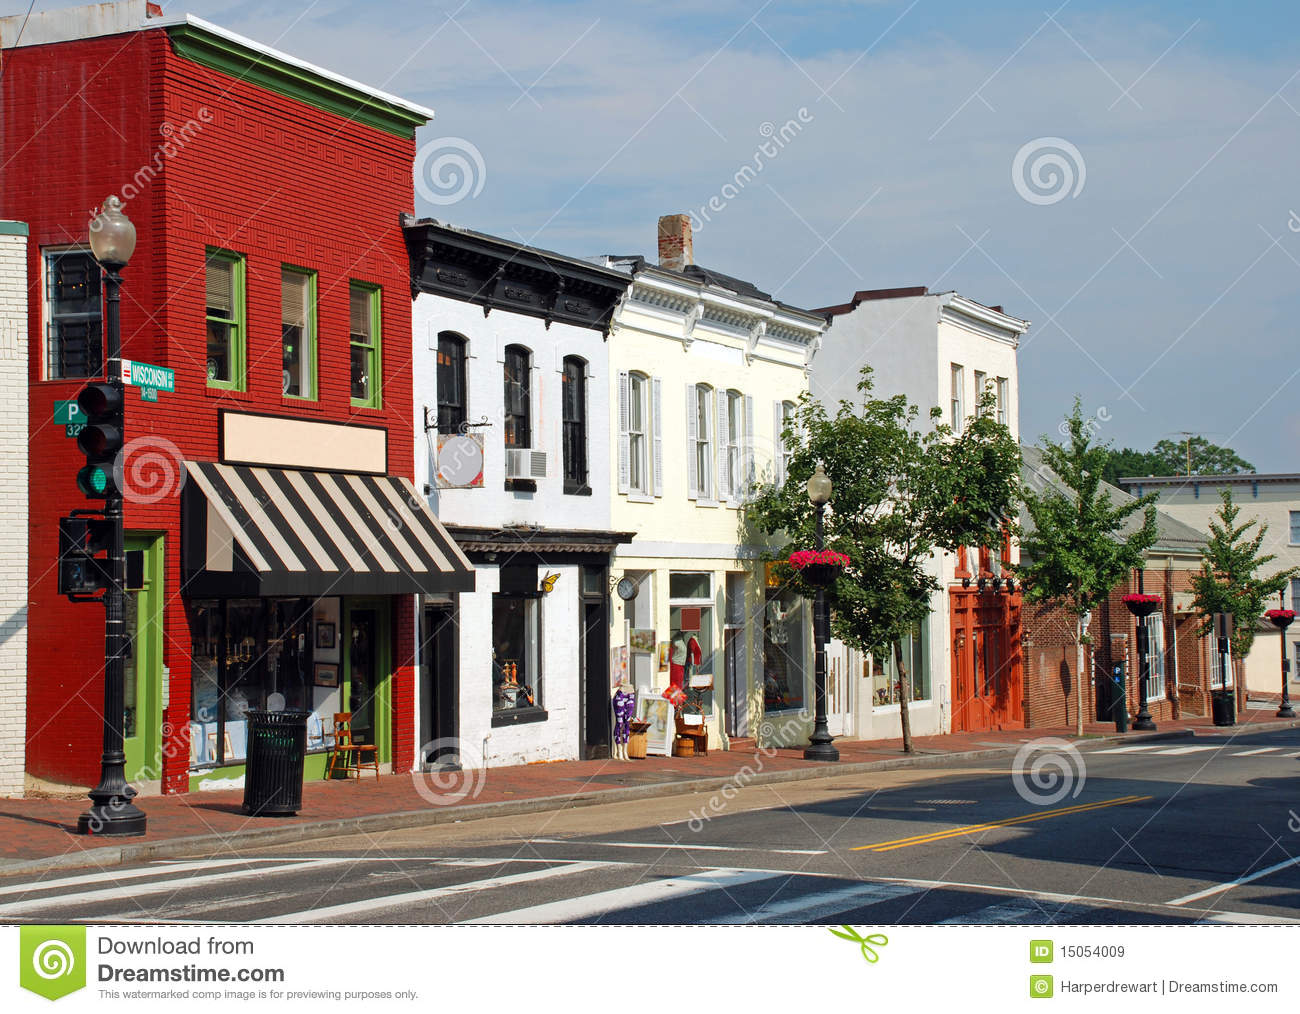 Small Town Main Street 2 Royalty Free Stock Images   Image  15054009